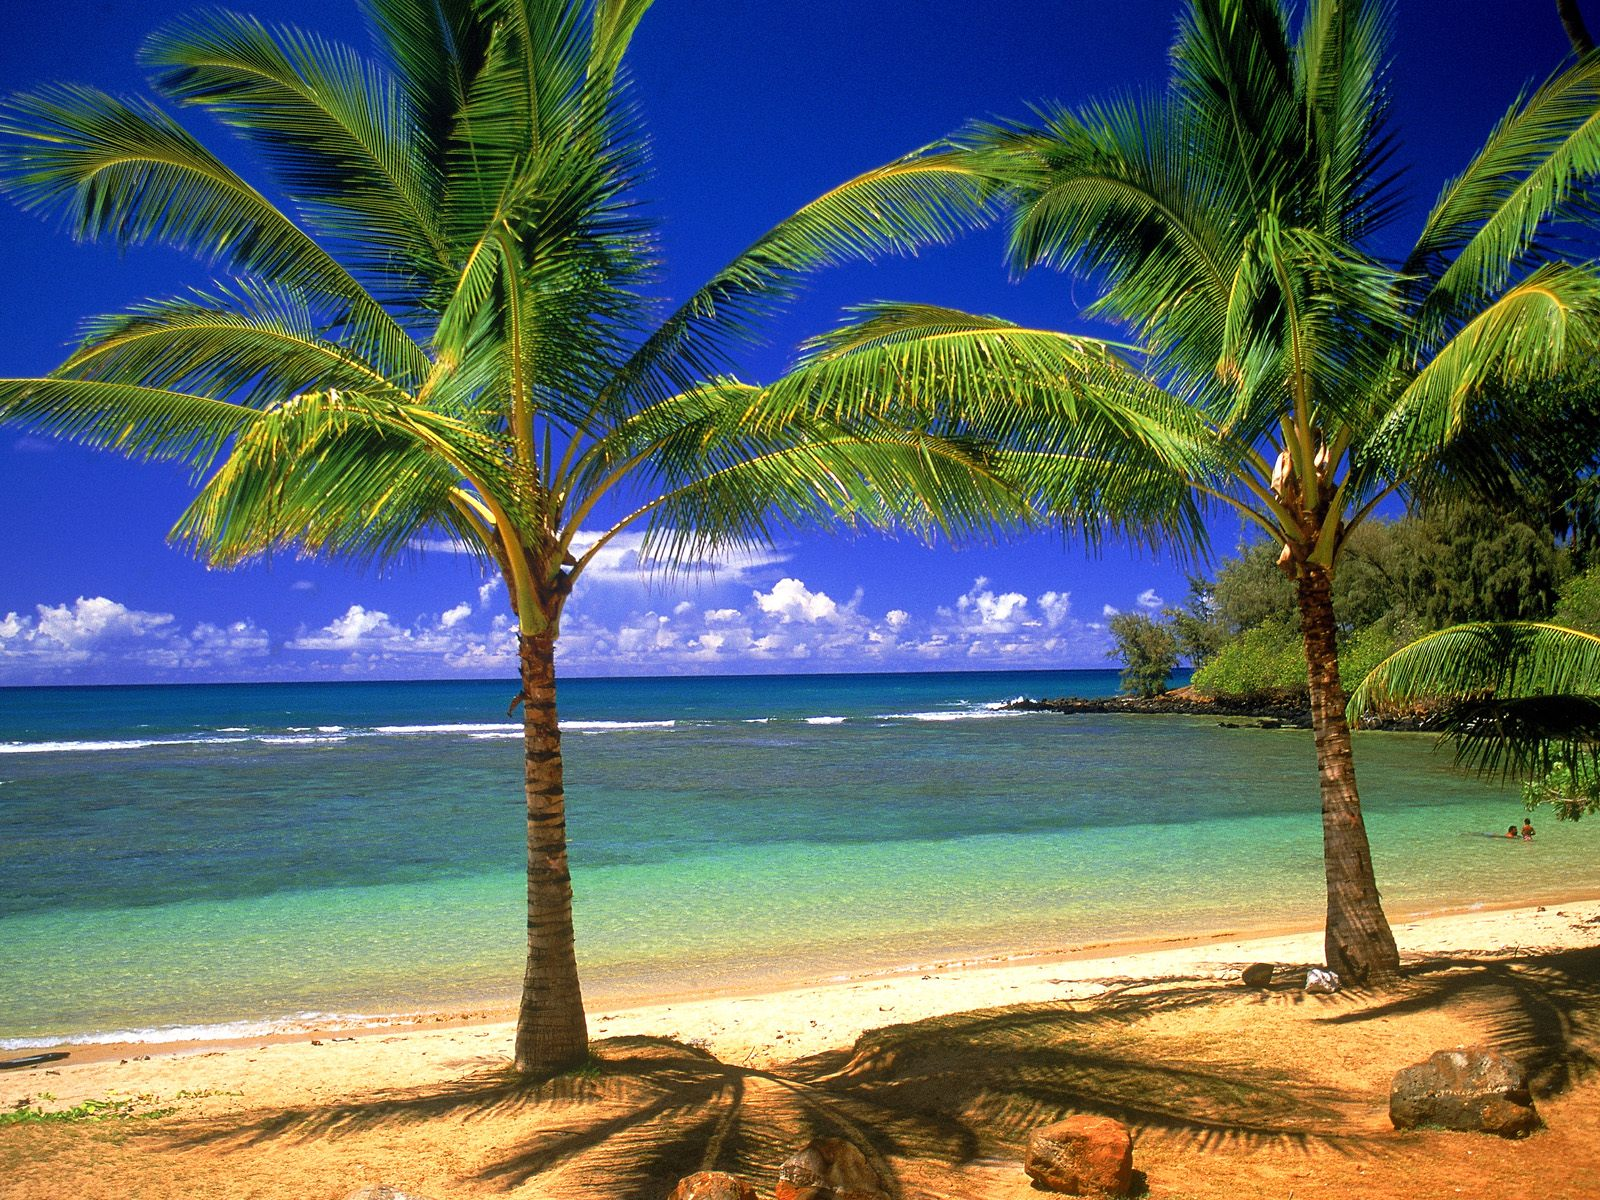 Tropical Lagoon   Canada Photography Desktop Wallpapers 8046 Views 1600x1200